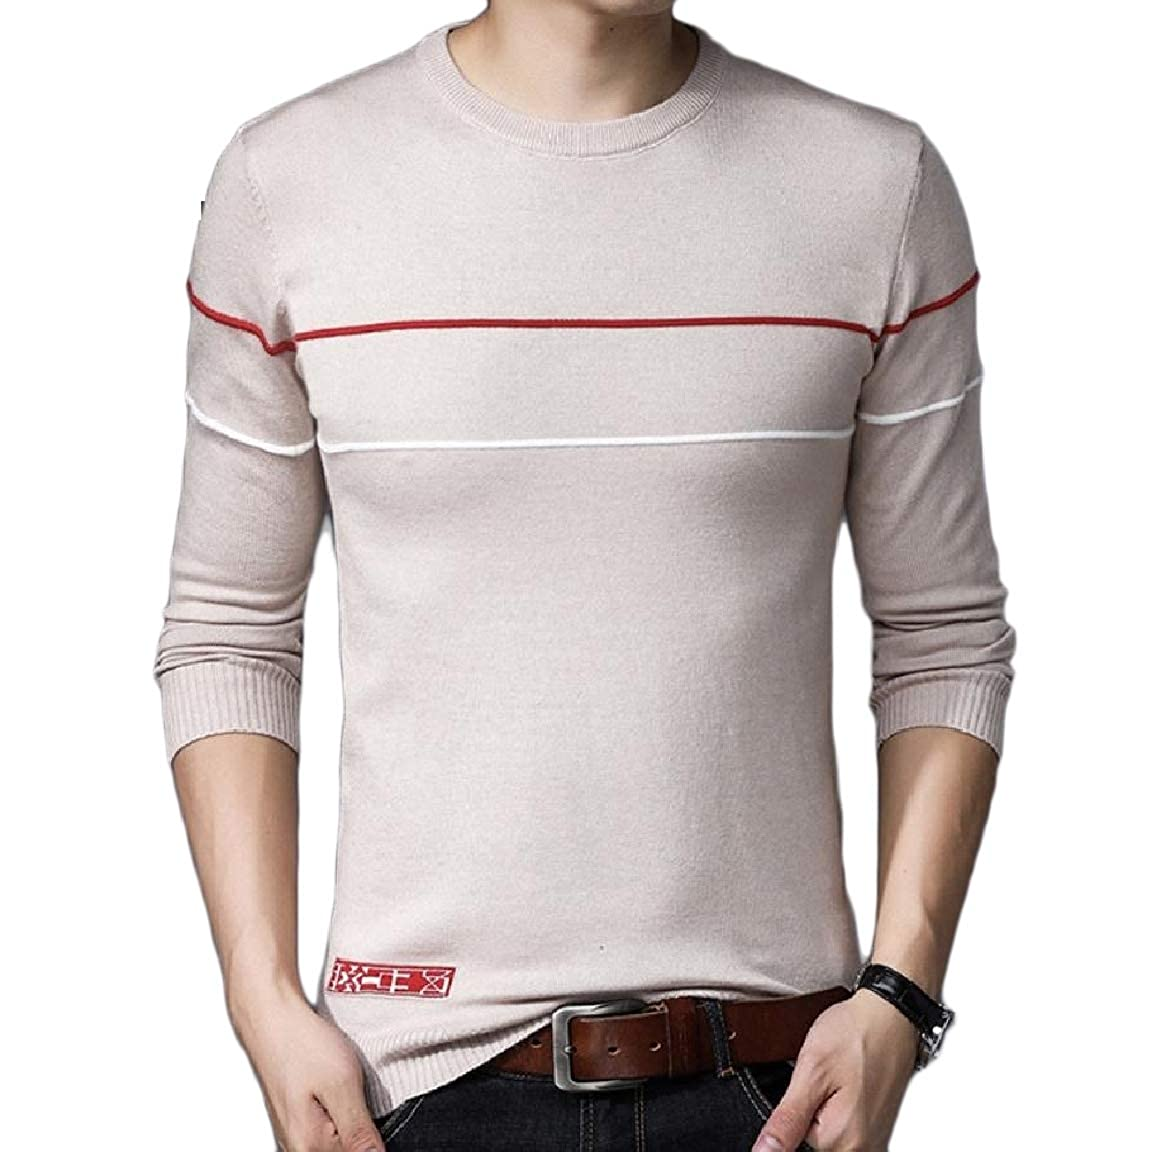 Comaba Mens Contrast Fitted Thermal Soft Knitting Pullover Sweaters